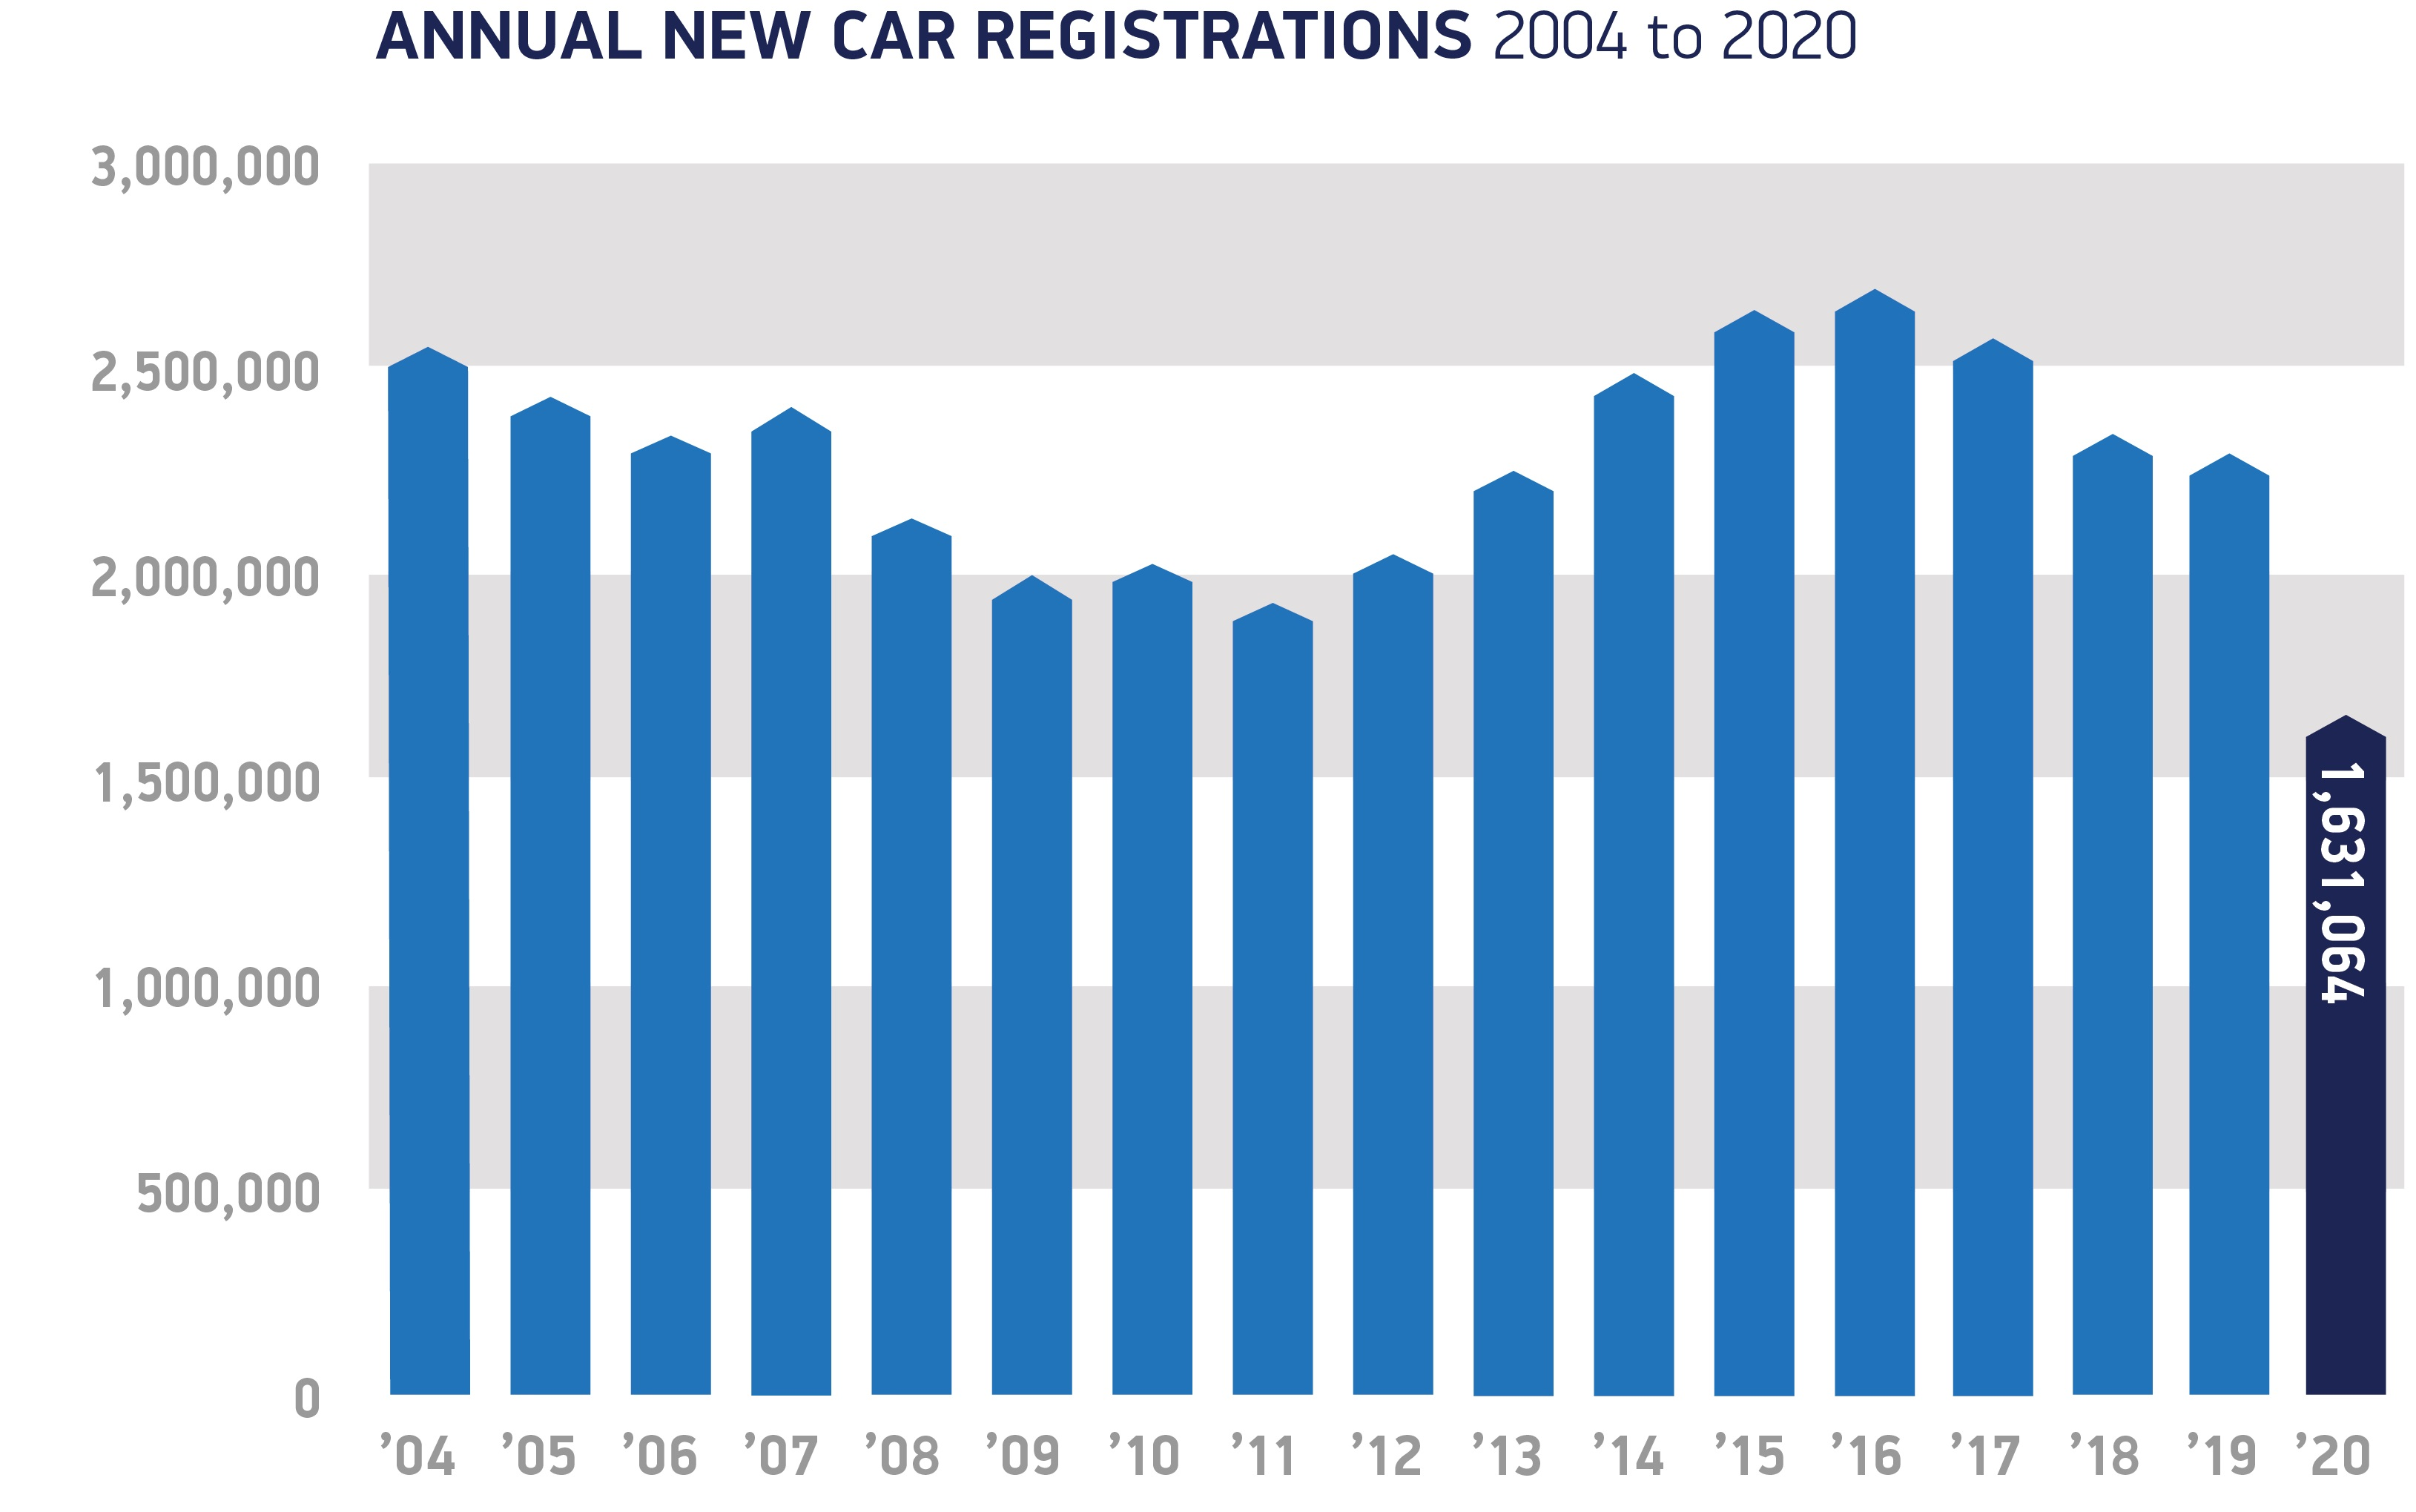 Annual-registrations-2004-to-2020